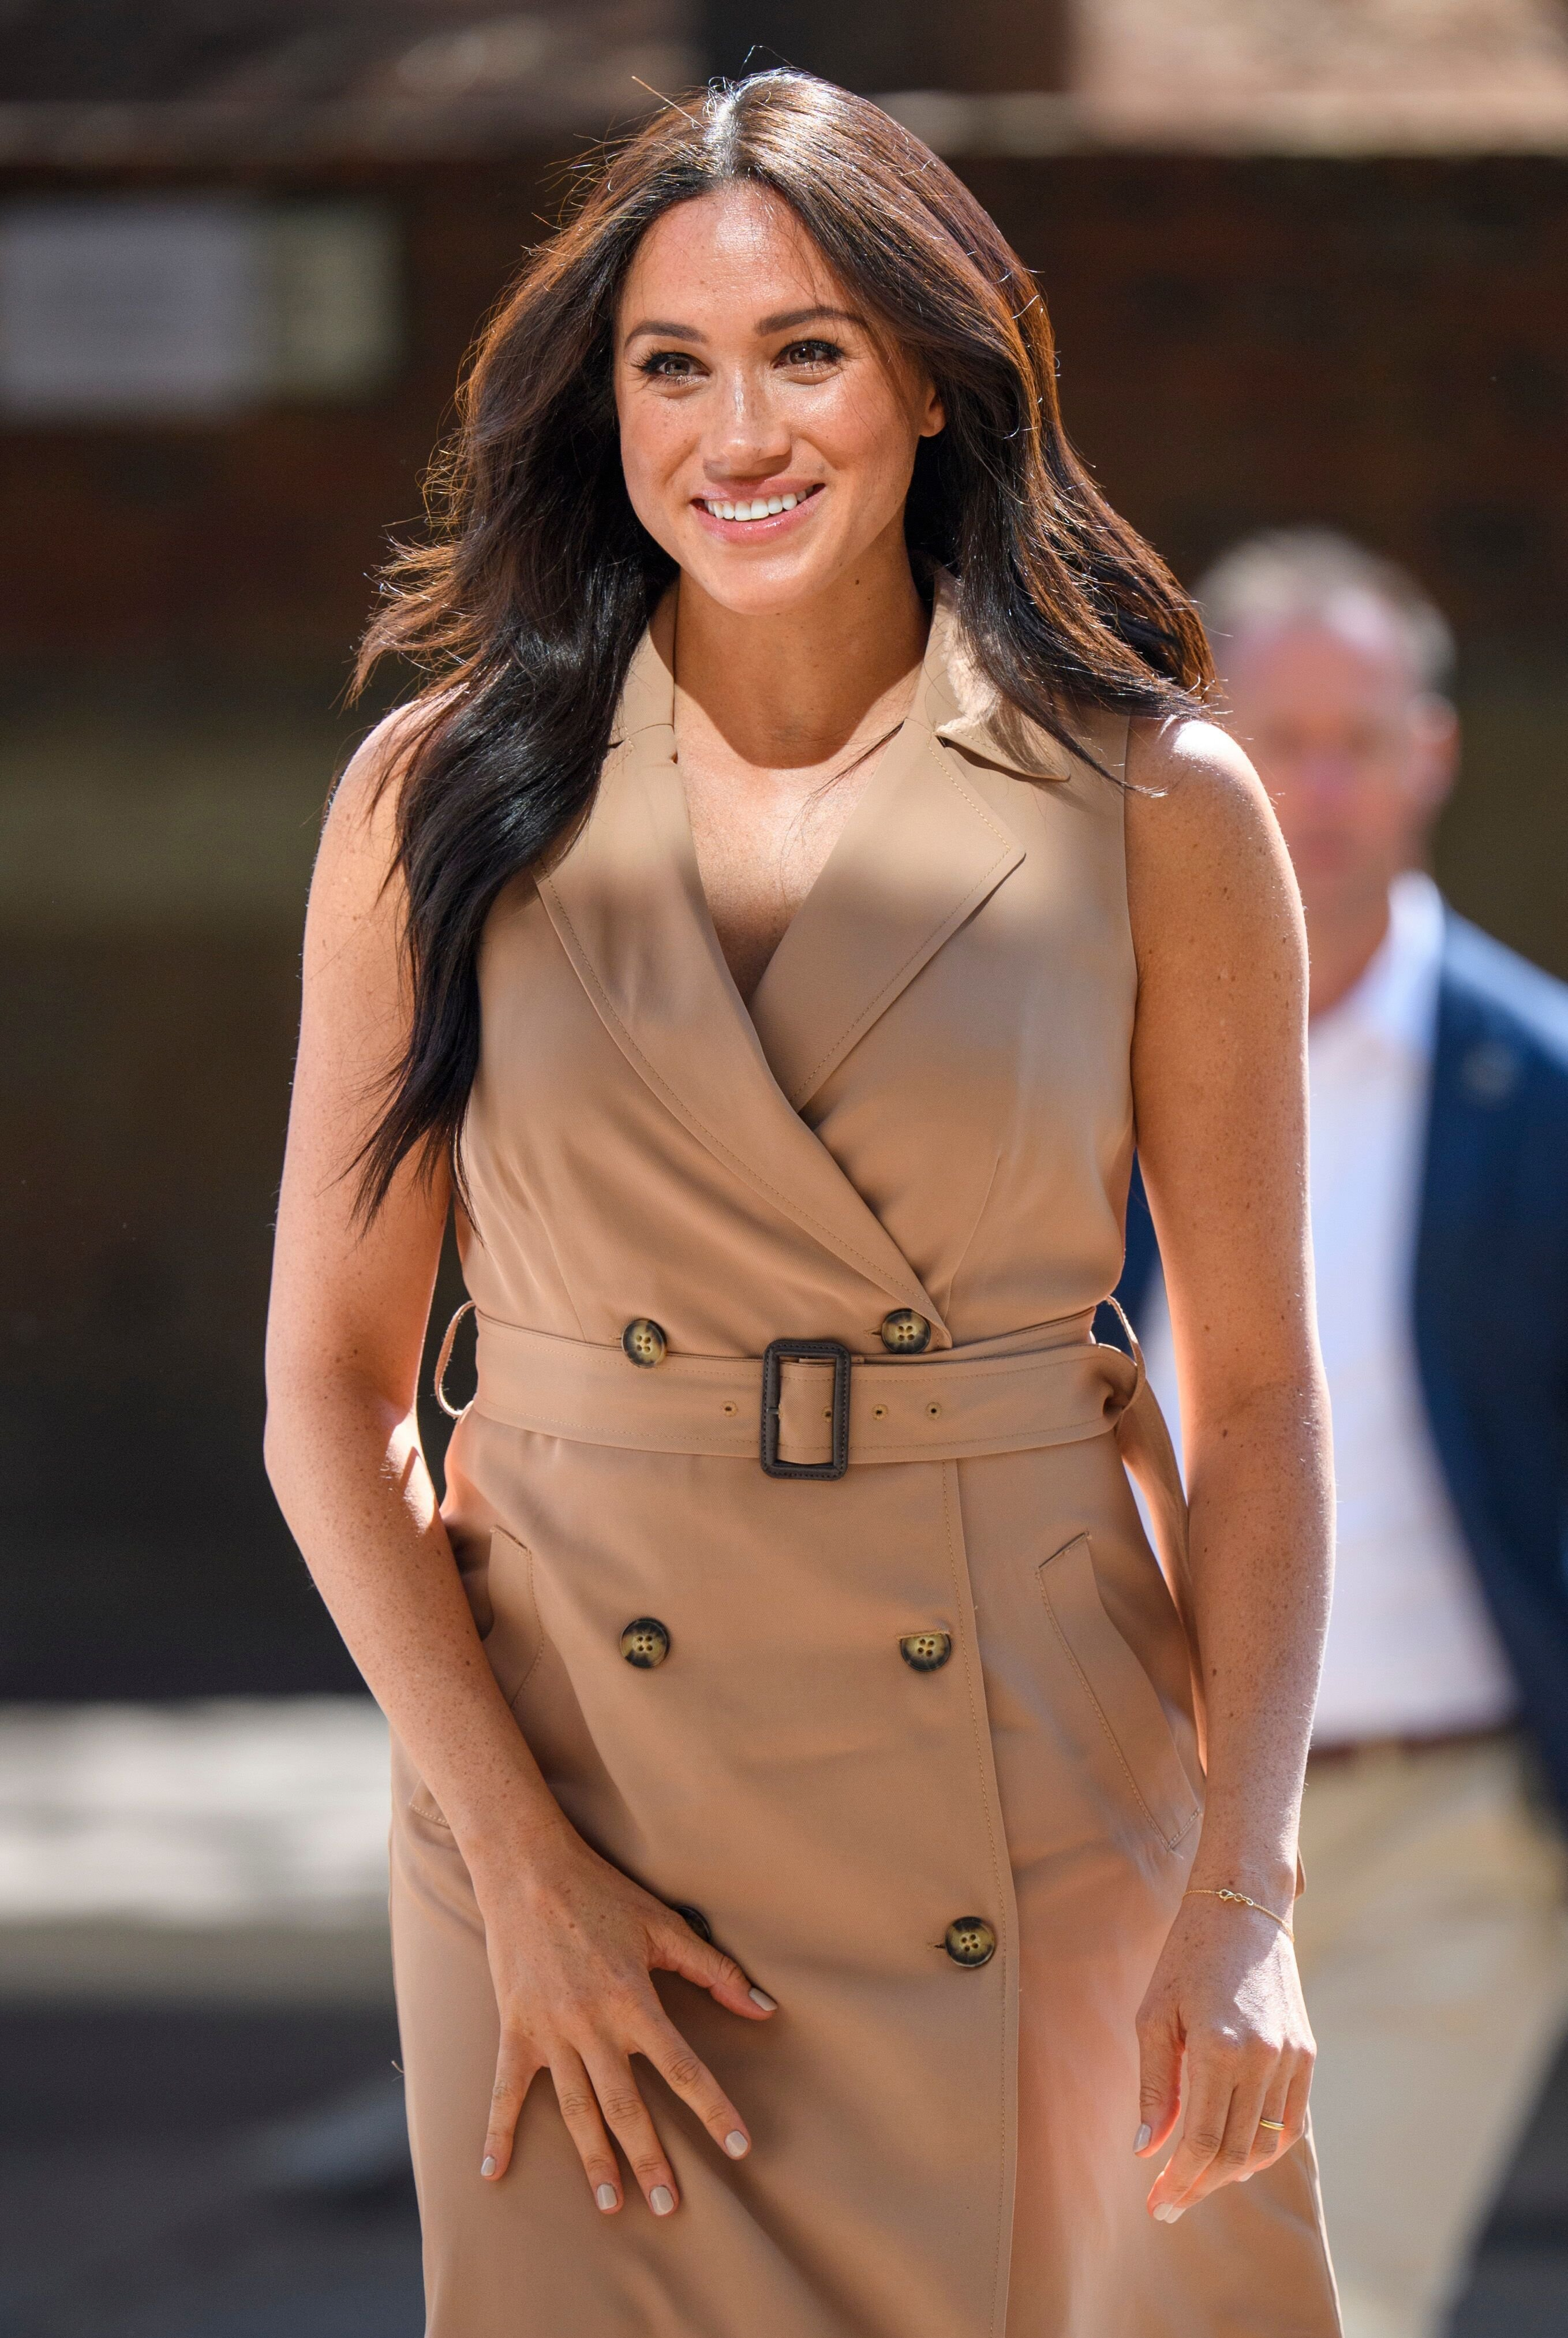 Meghan, Duchess of Sussex, Patron of the Association of Commonwealth Universities (ACU) visits the University of Johannesburg on October 1, 2019 in Johannesburg, South Africa | Photo: Getty Images